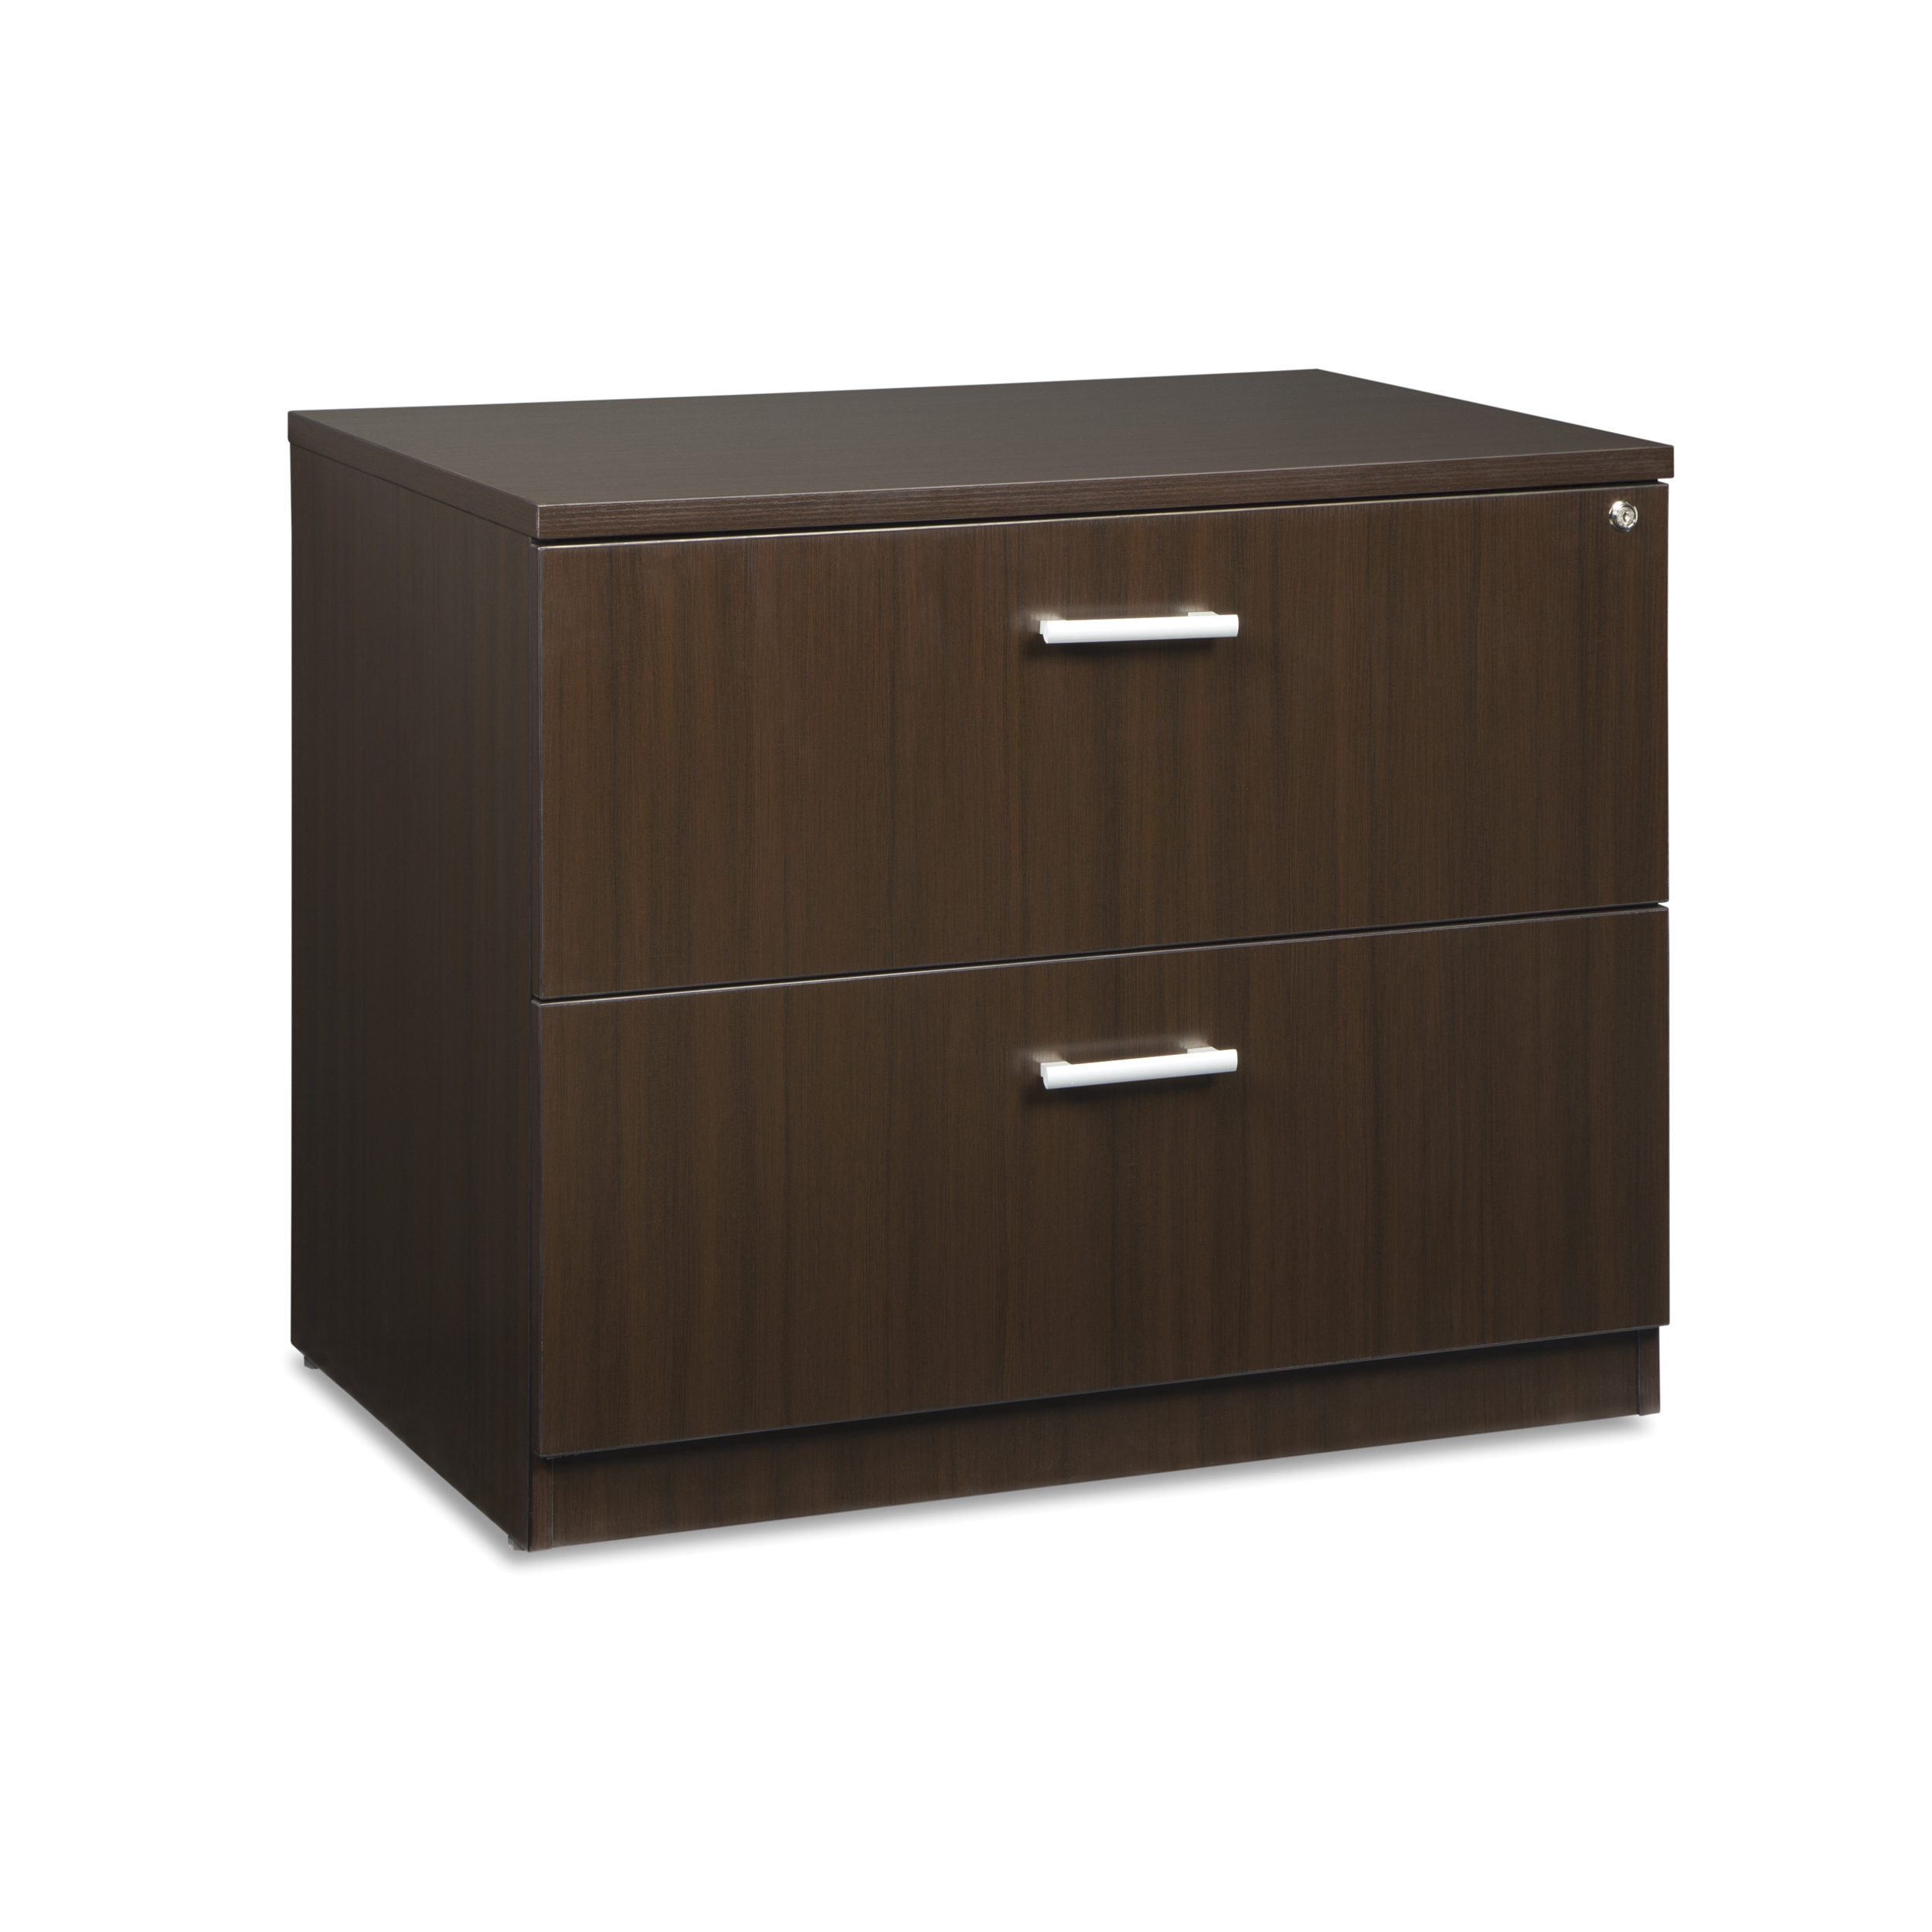 Ofm Fulcrum Series Locking Lateral File Cabinet 2 Drawer Filing Cabinet Cherry Cl L36w Chy with sizing 2500 X 2500